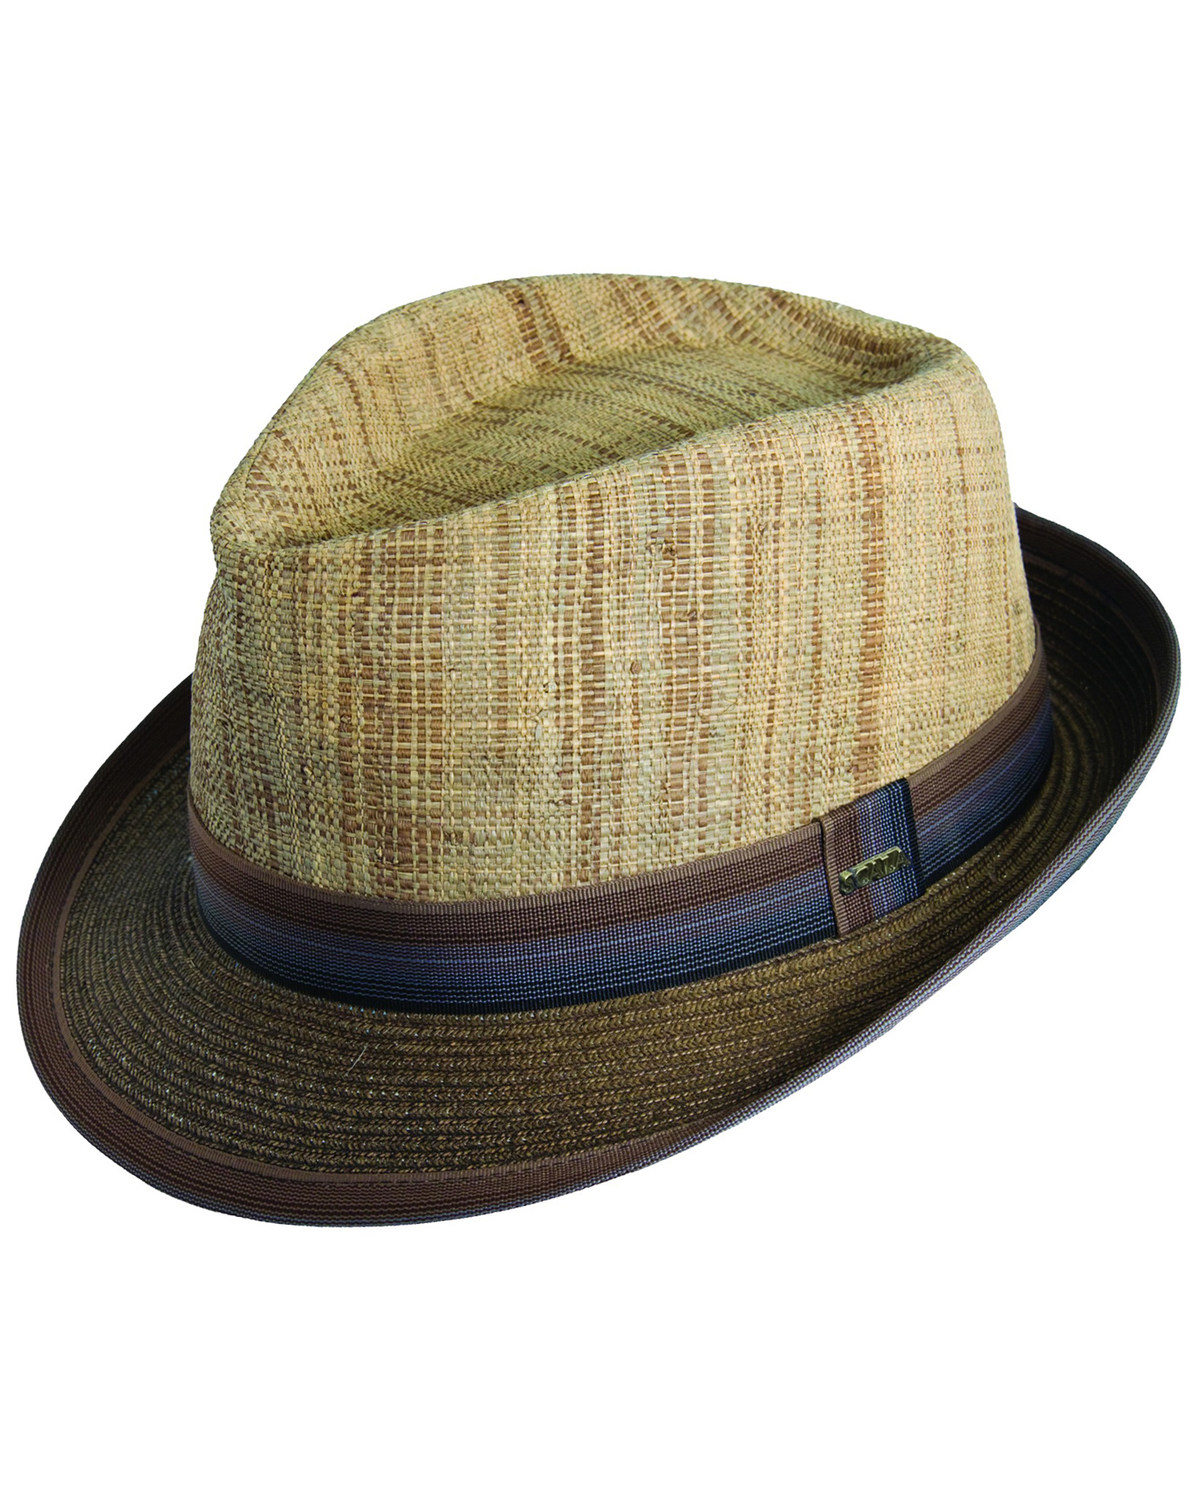 78f9c32b353 Zoomed Image Scala Men's Brown Raffia & Paper Braid Fedora Hat, Brown,  hi-res